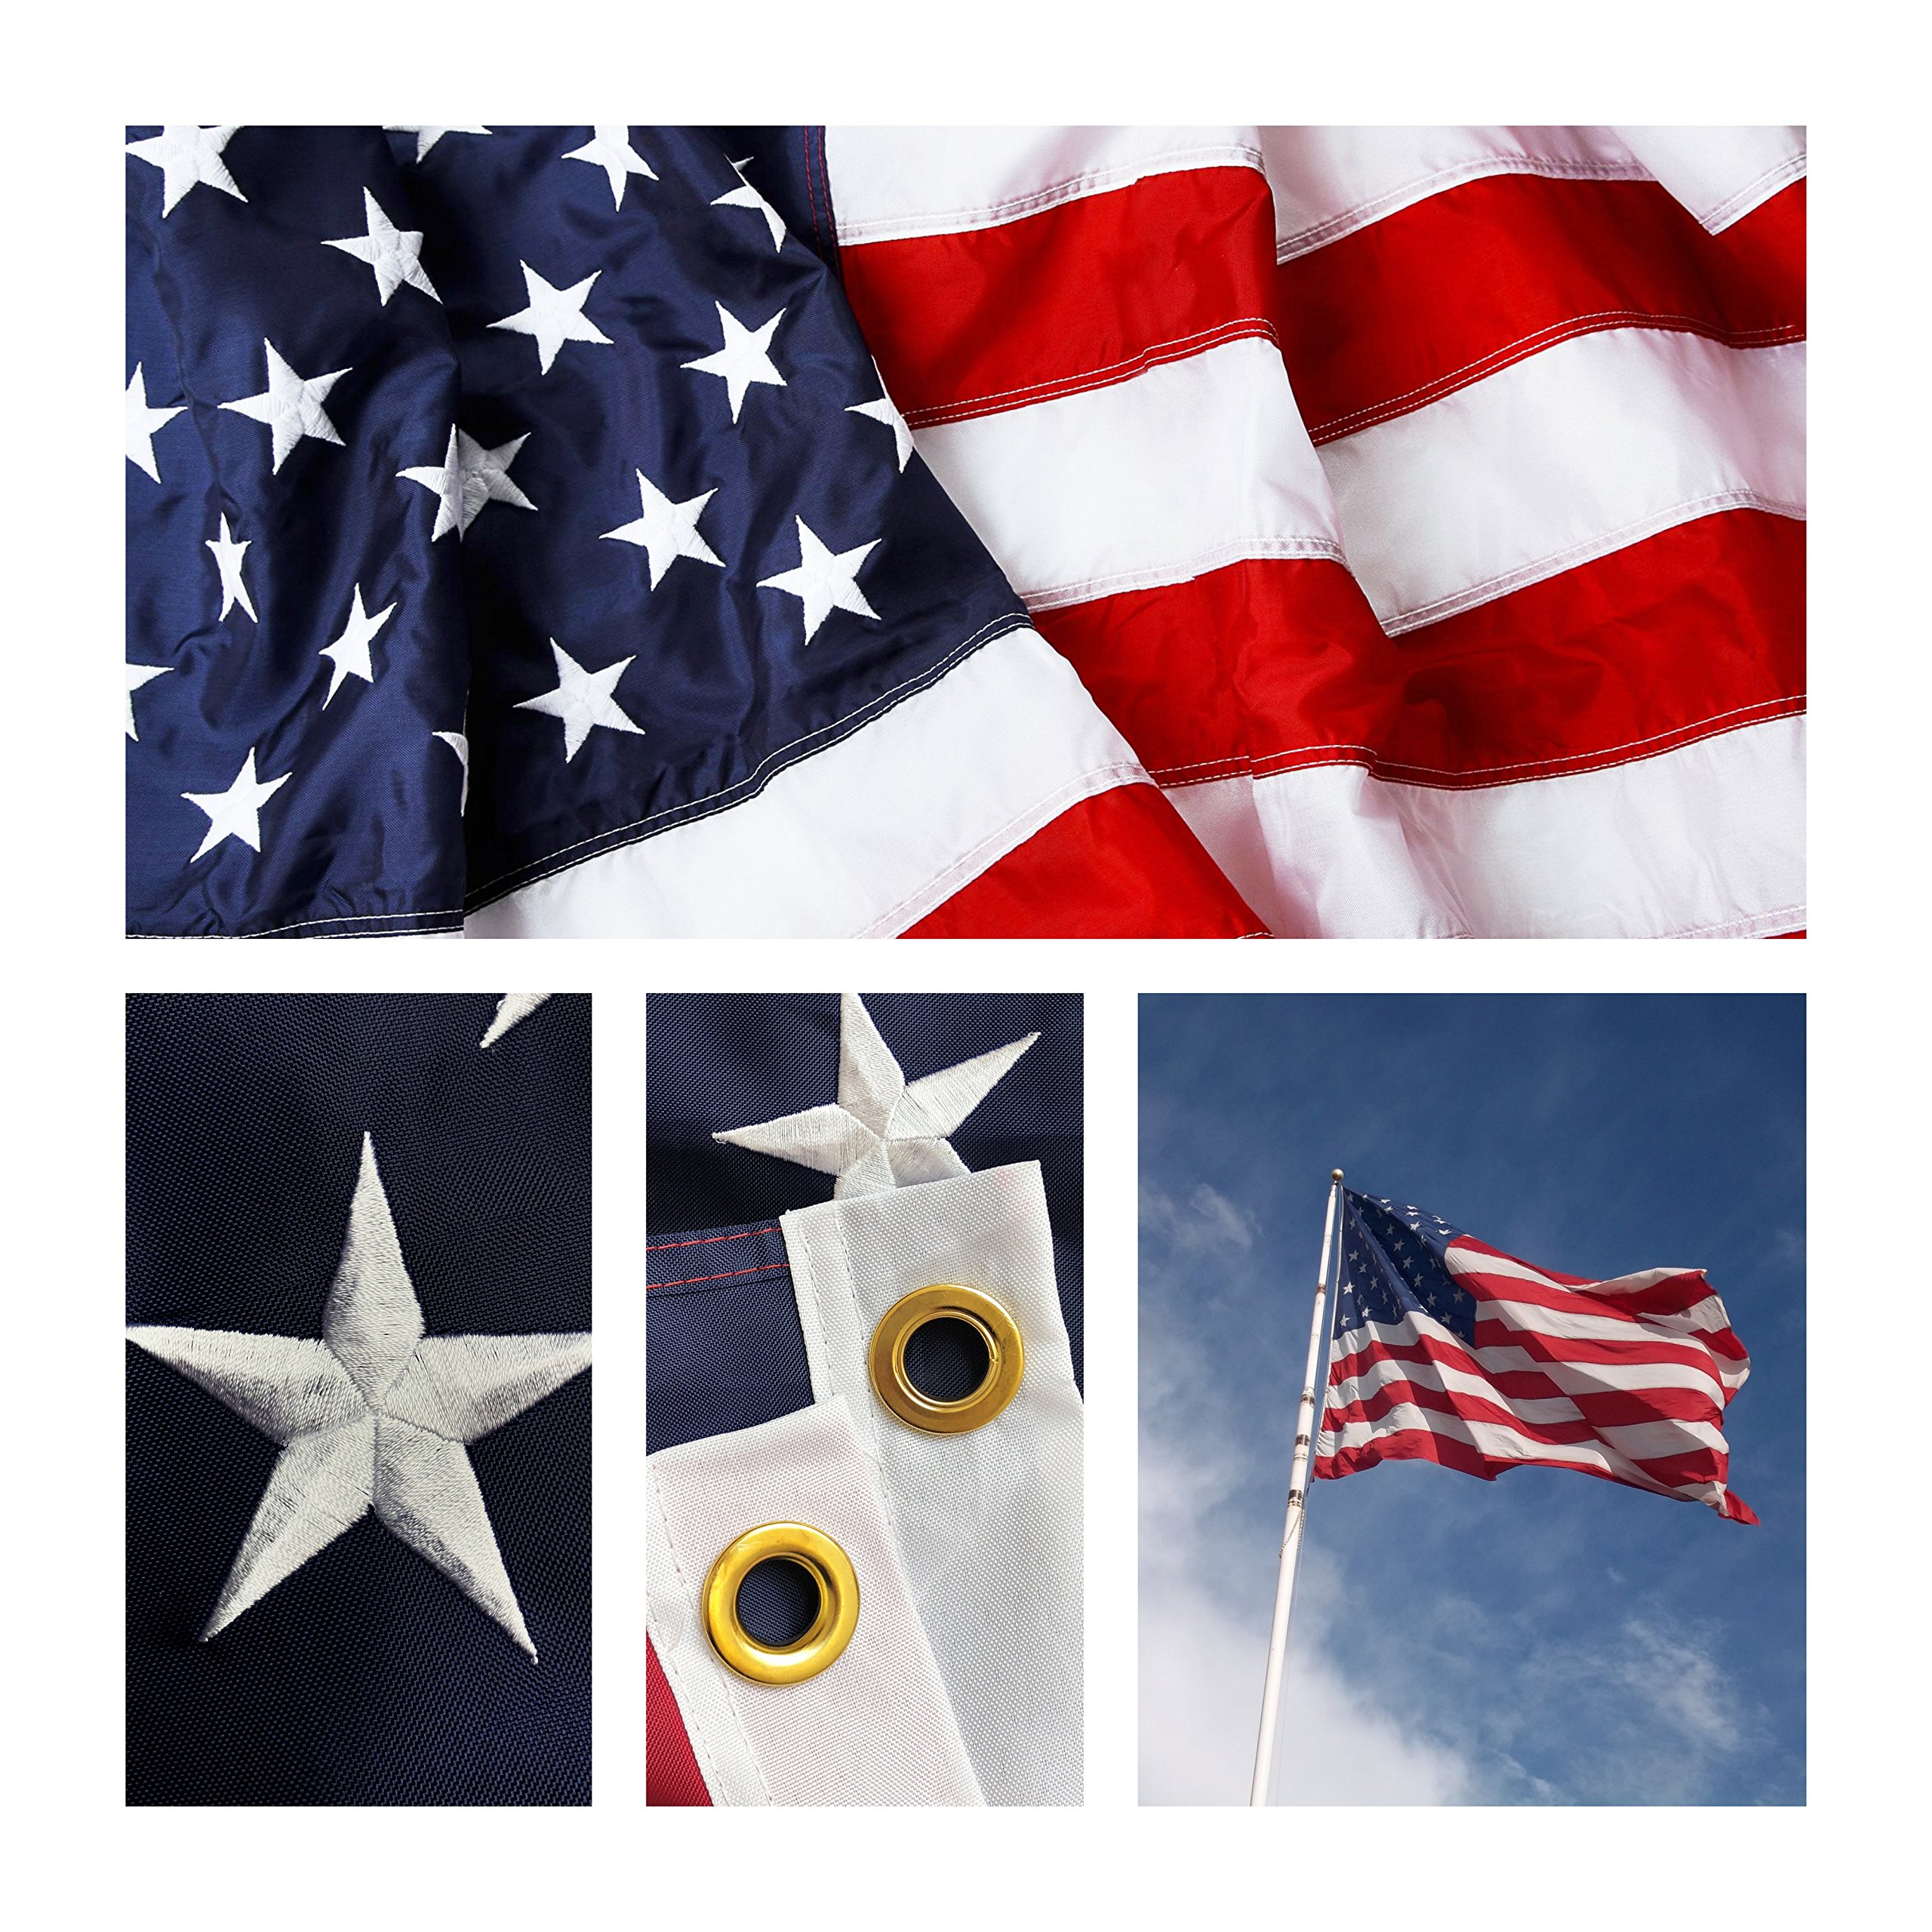 Premium Weatherproof Strong & Long Lasting Outdoor American Flag 3x5 ft, Heavy duty 240D Nylon with Embroidered Stars, Sewn Stripes and Brass Grommets, Great for Commercial and Residential Use